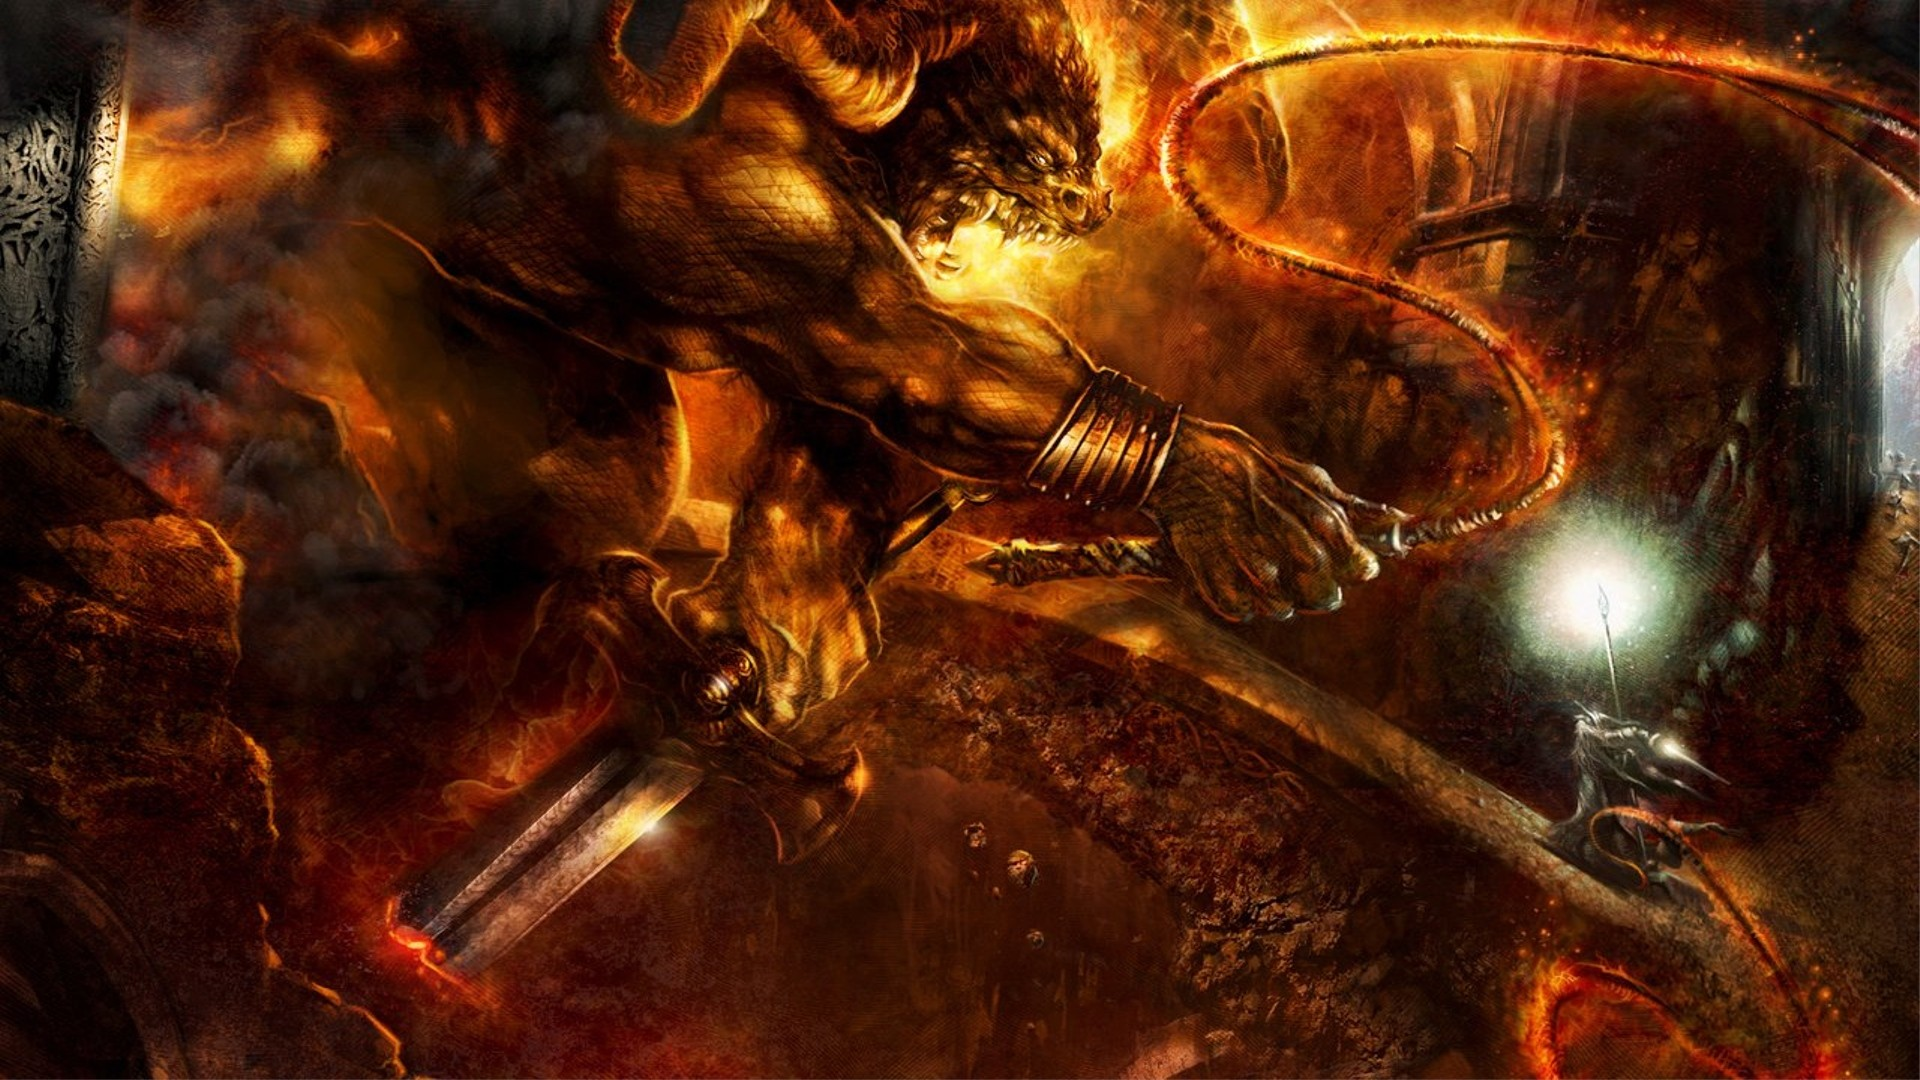 Gandalf Wallpaper Balrog, Gandalf, The, Lord, Of, The, Rings